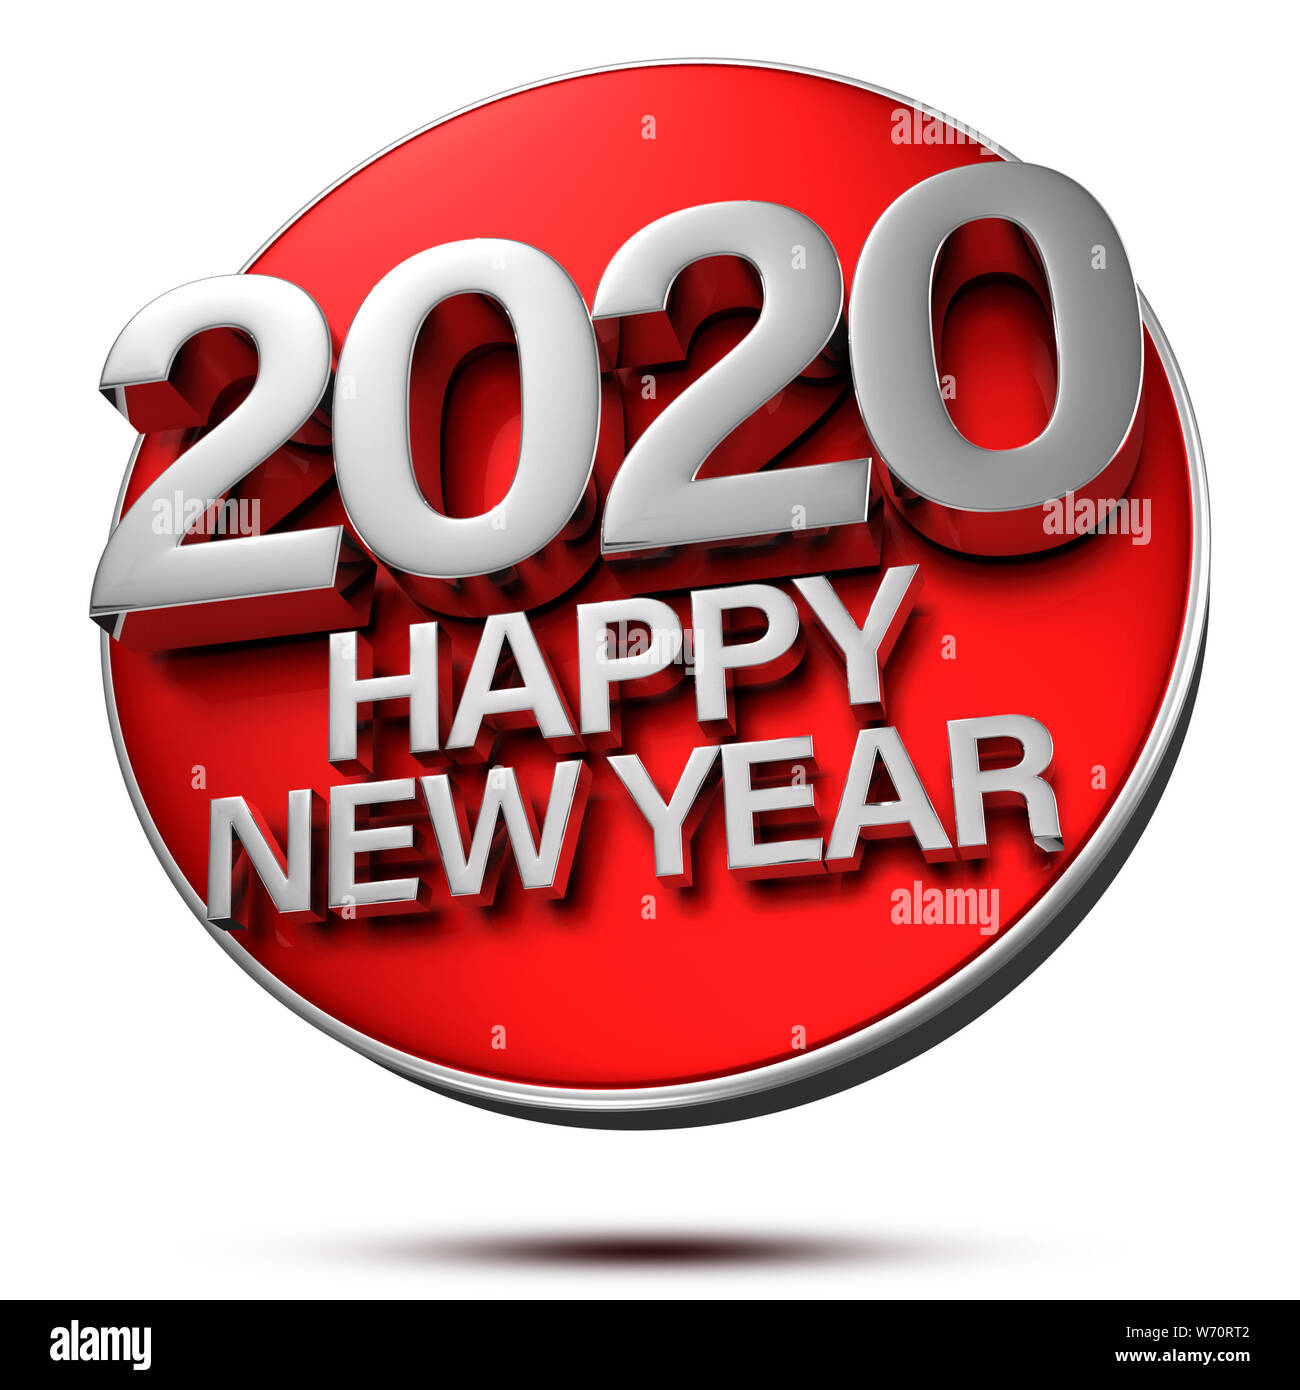 Happy New Year 2020 Images.Happy New Year 2020 3d Rendering Is Placed On A Red Circle